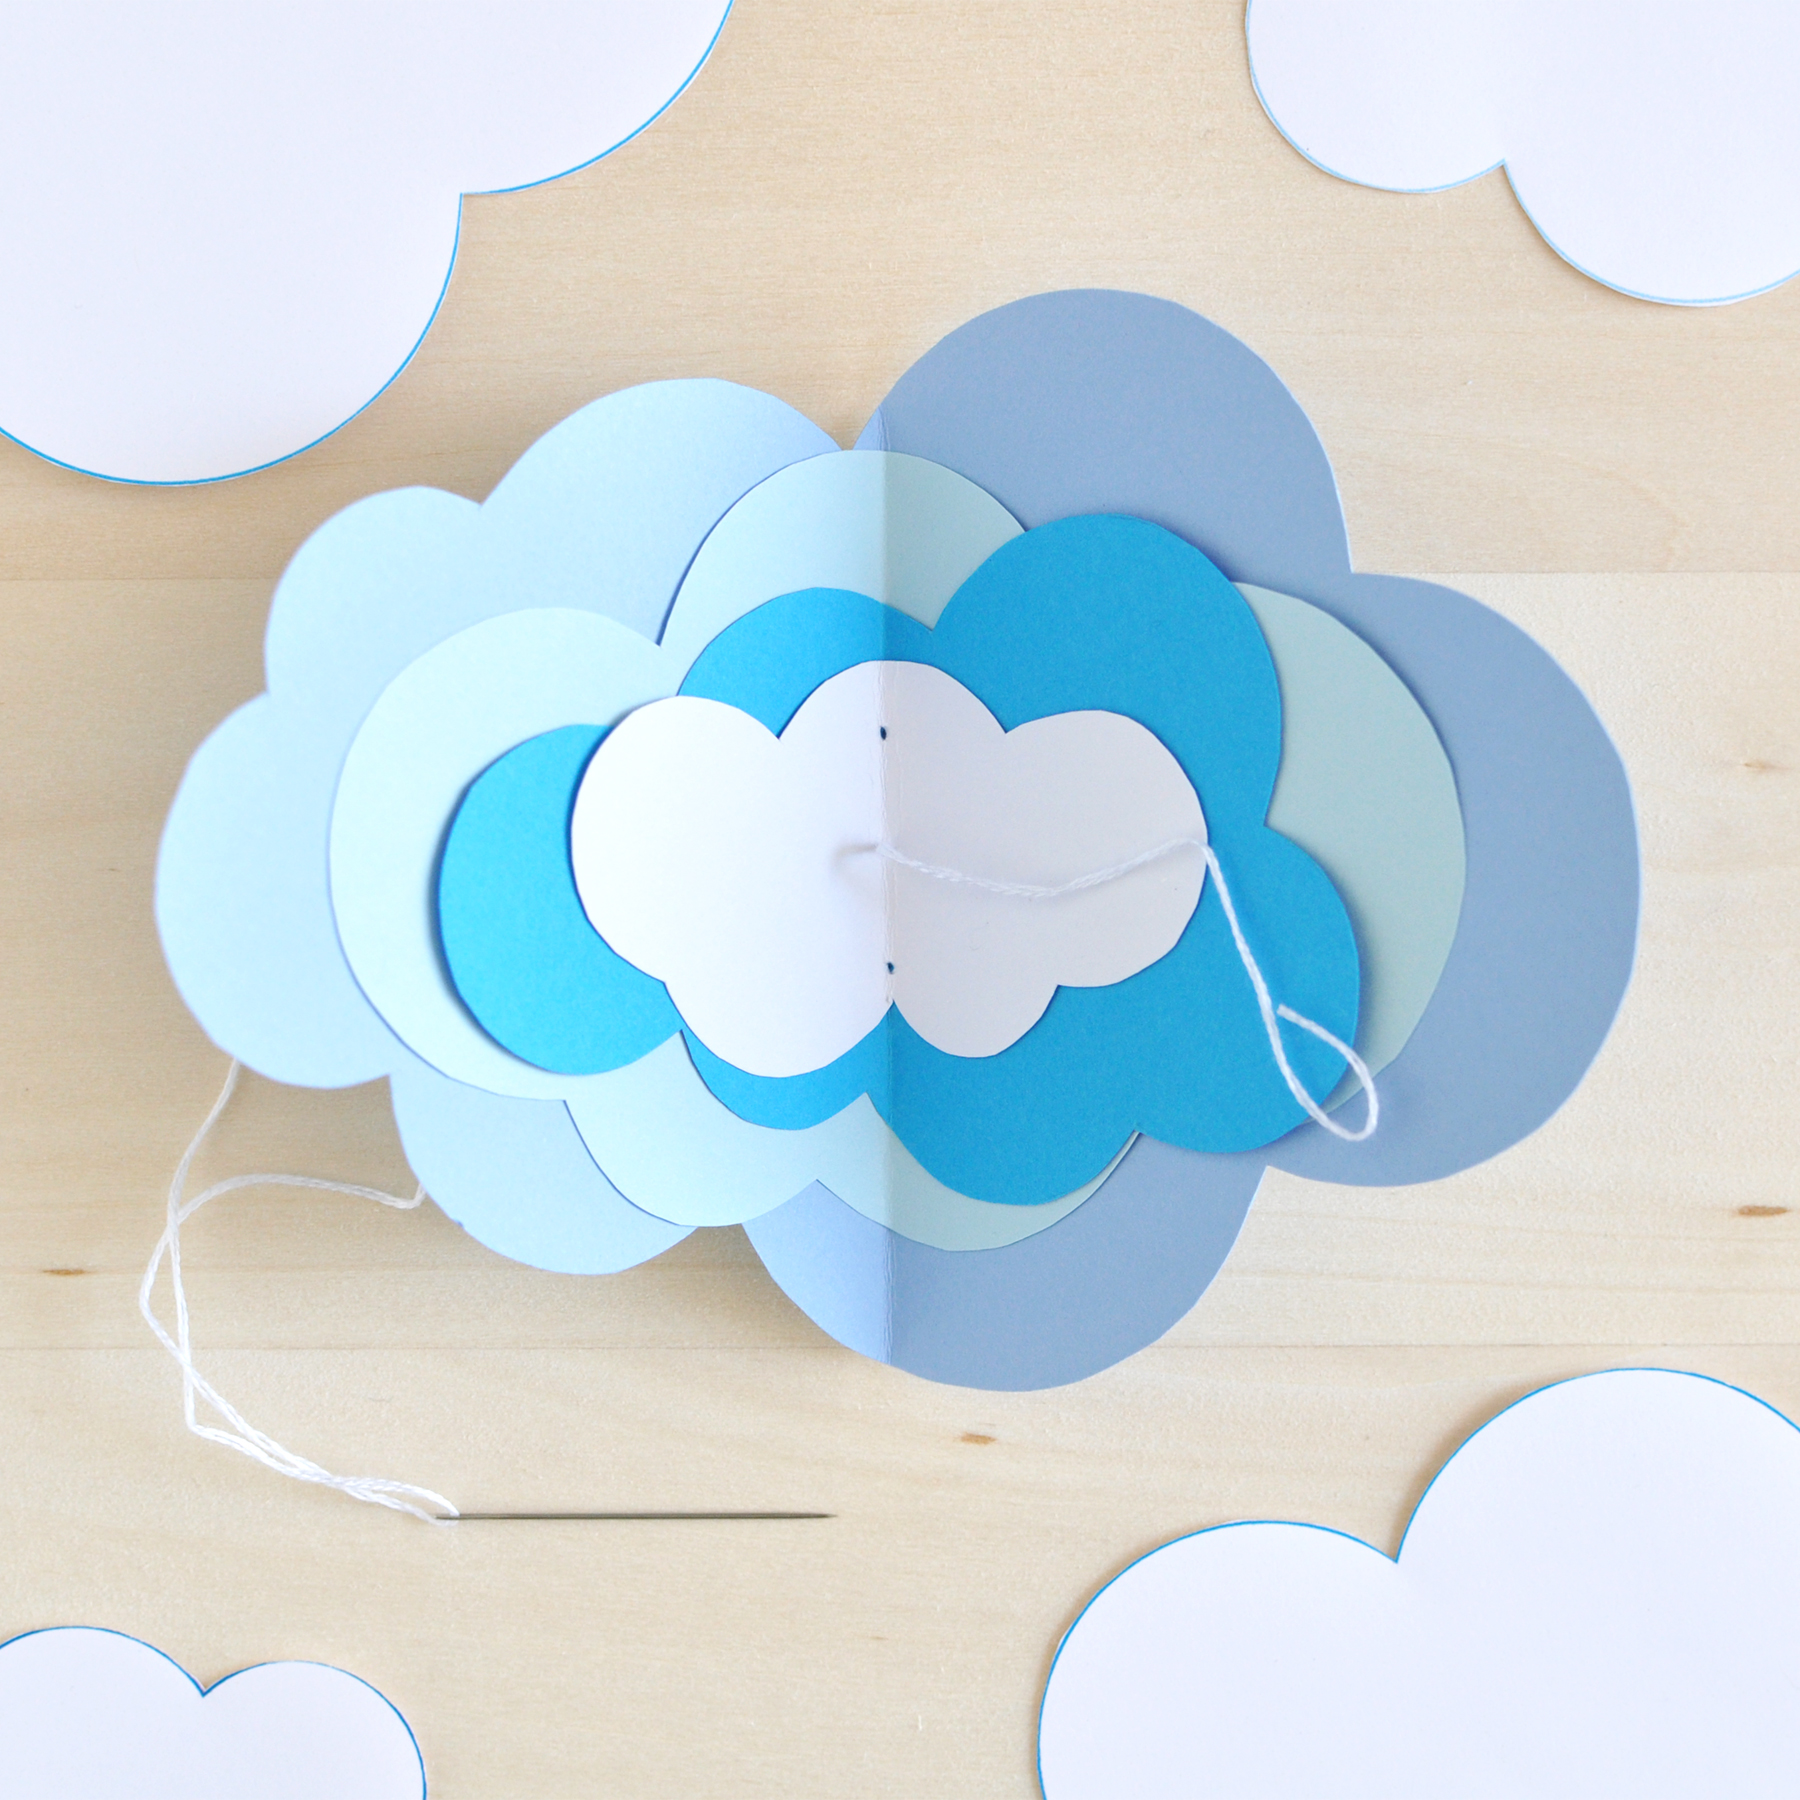 Make-Your-Own-Mini-Cloud-Journal---Image8.jpg